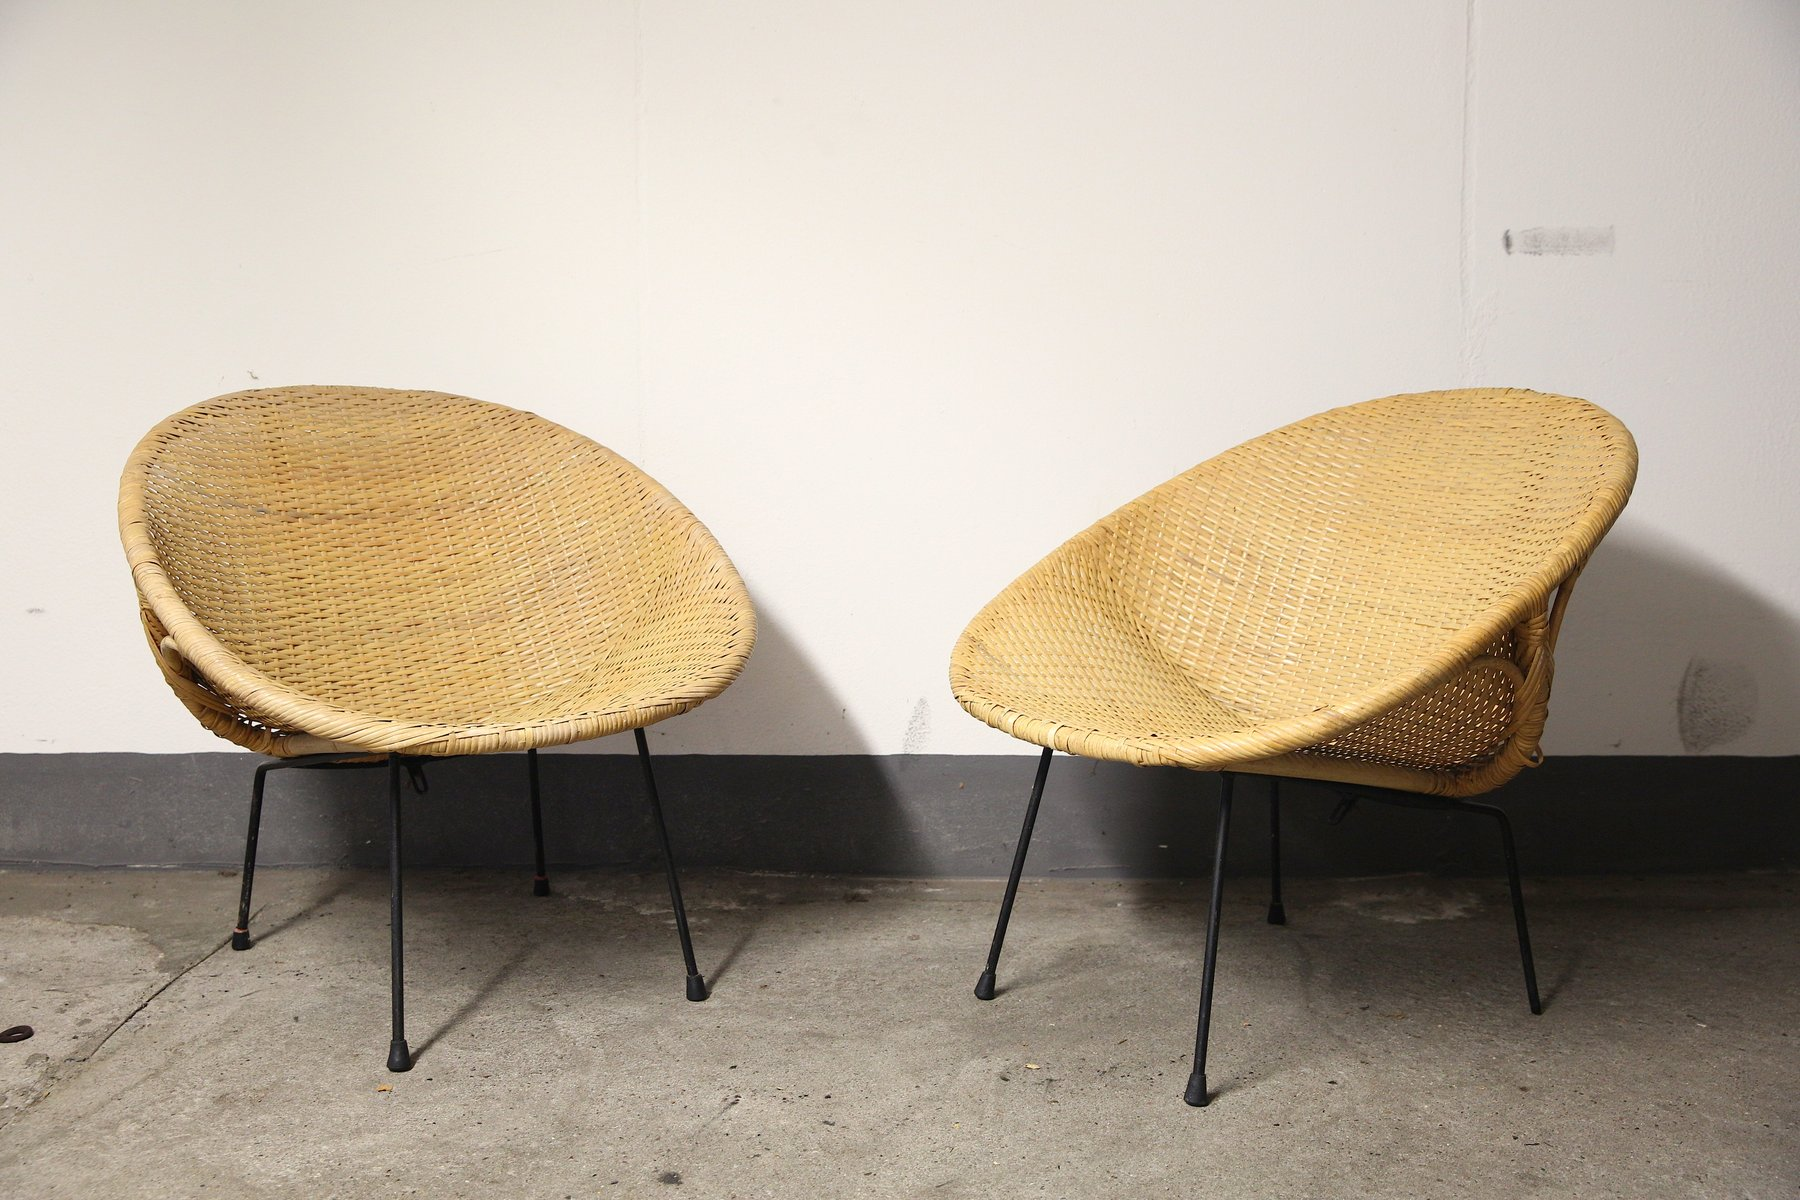 Round Bamboo Basket Chairs 1950s Set of 2 for sale at Pamono